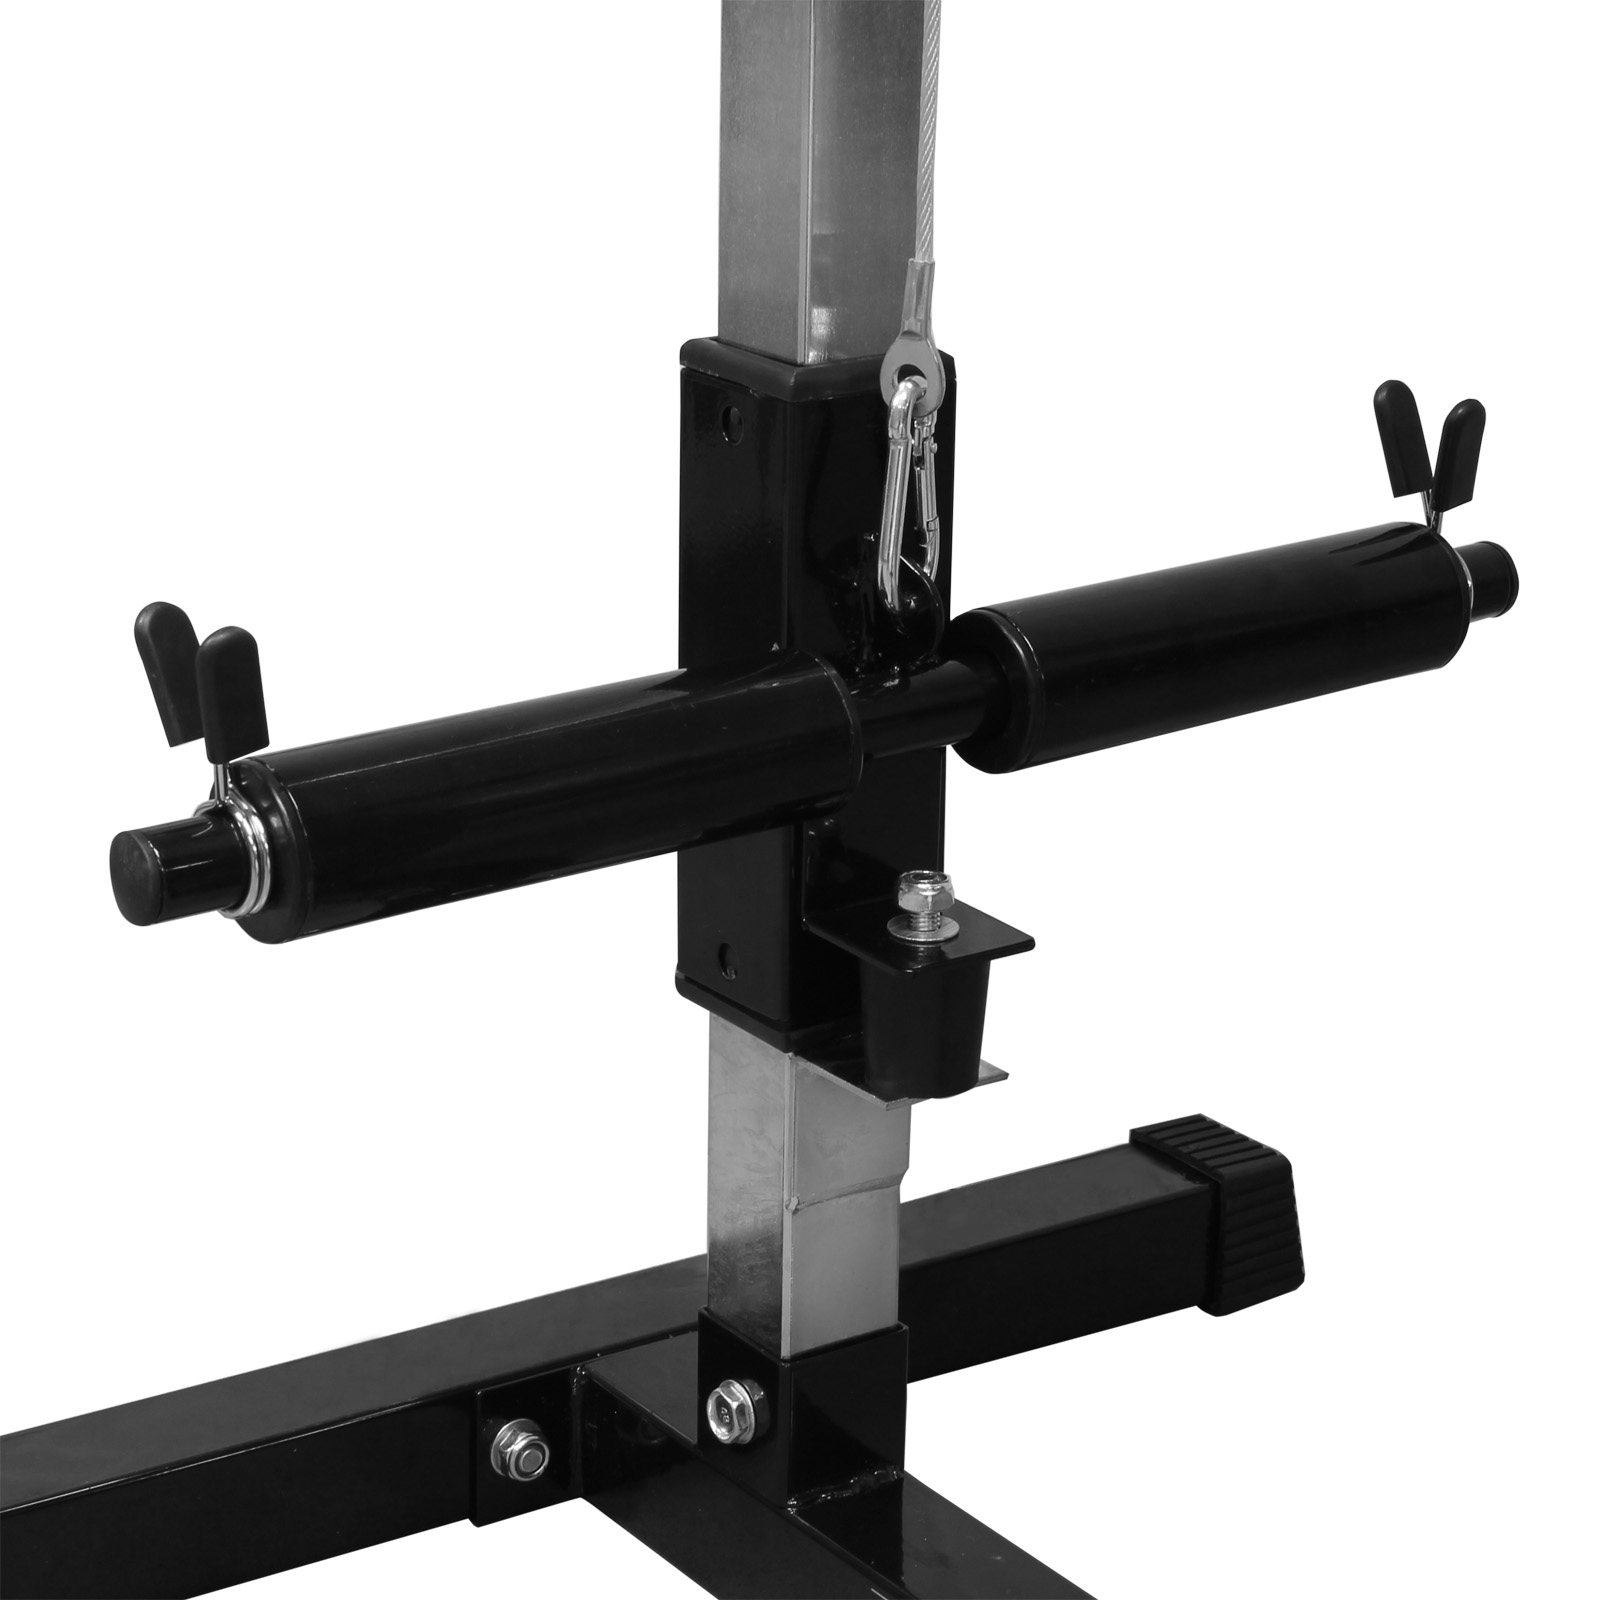 Bench Presses Vs Lat Pull Downs: DTX Fitness Home Multi Gym Cable/Lat Pull Down Workstation